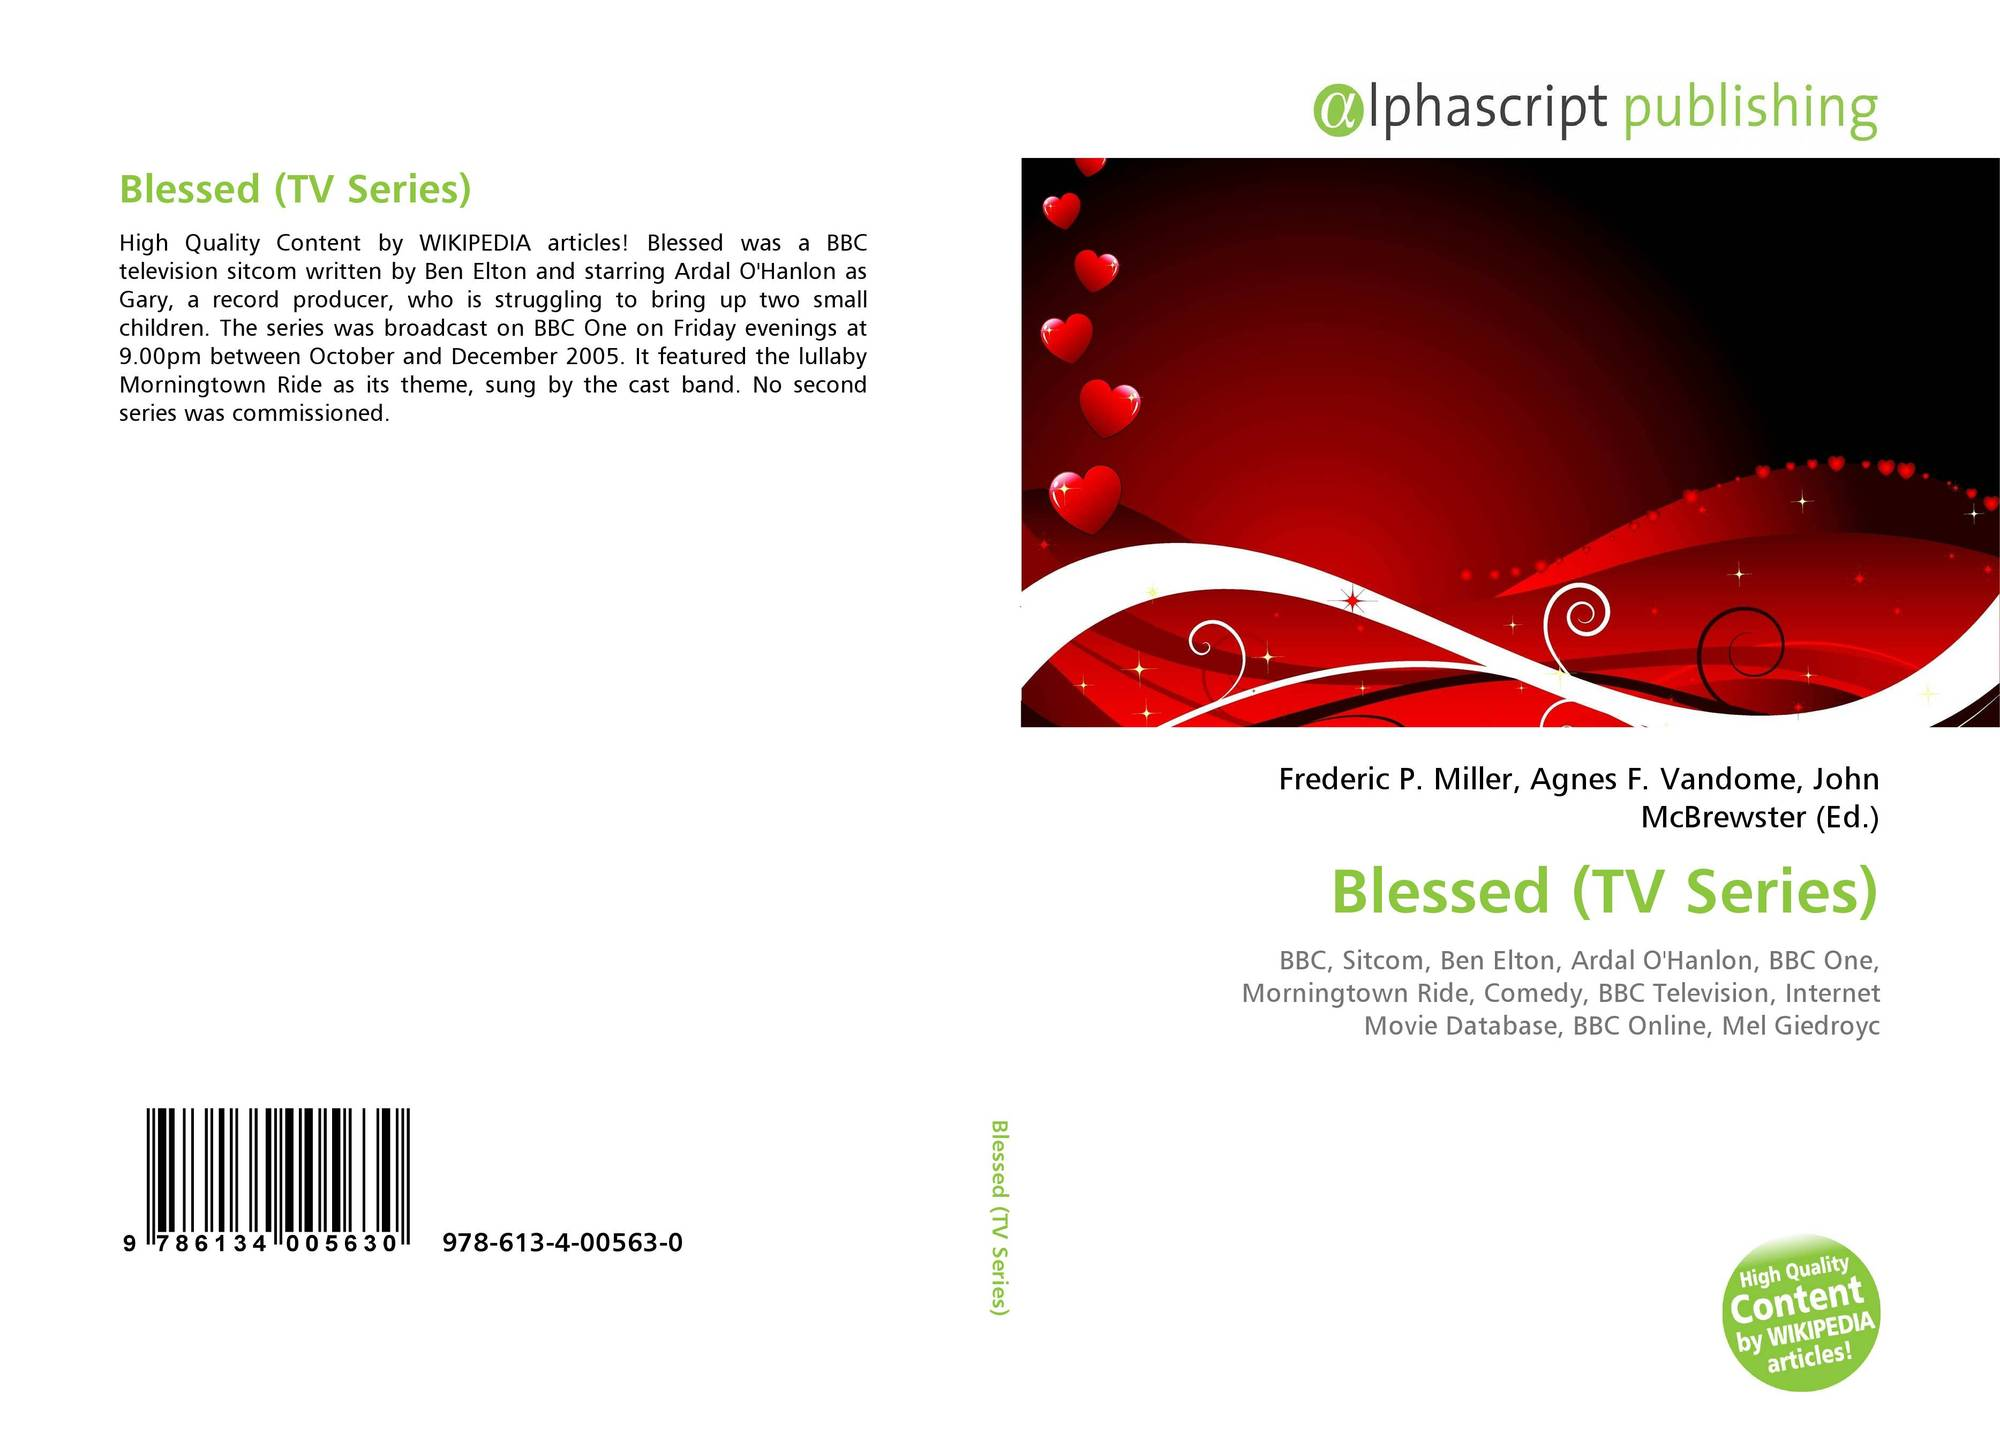 Blessed (TV Series), 978-613-4-00563-0, 6134005630 ,9786134005630